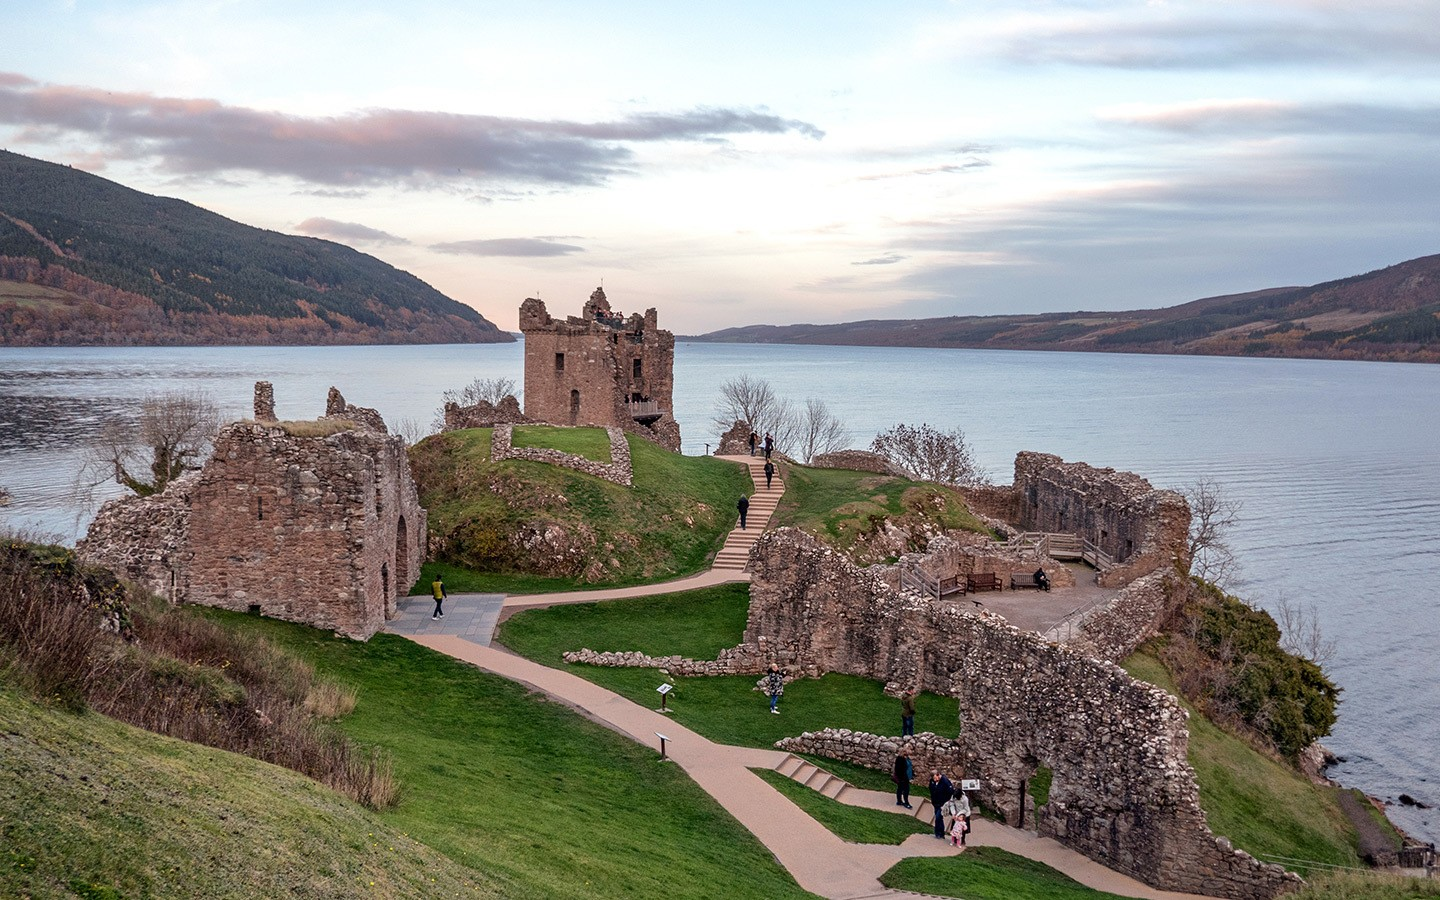 Sunset at Urquhart Castle by Loch Ness